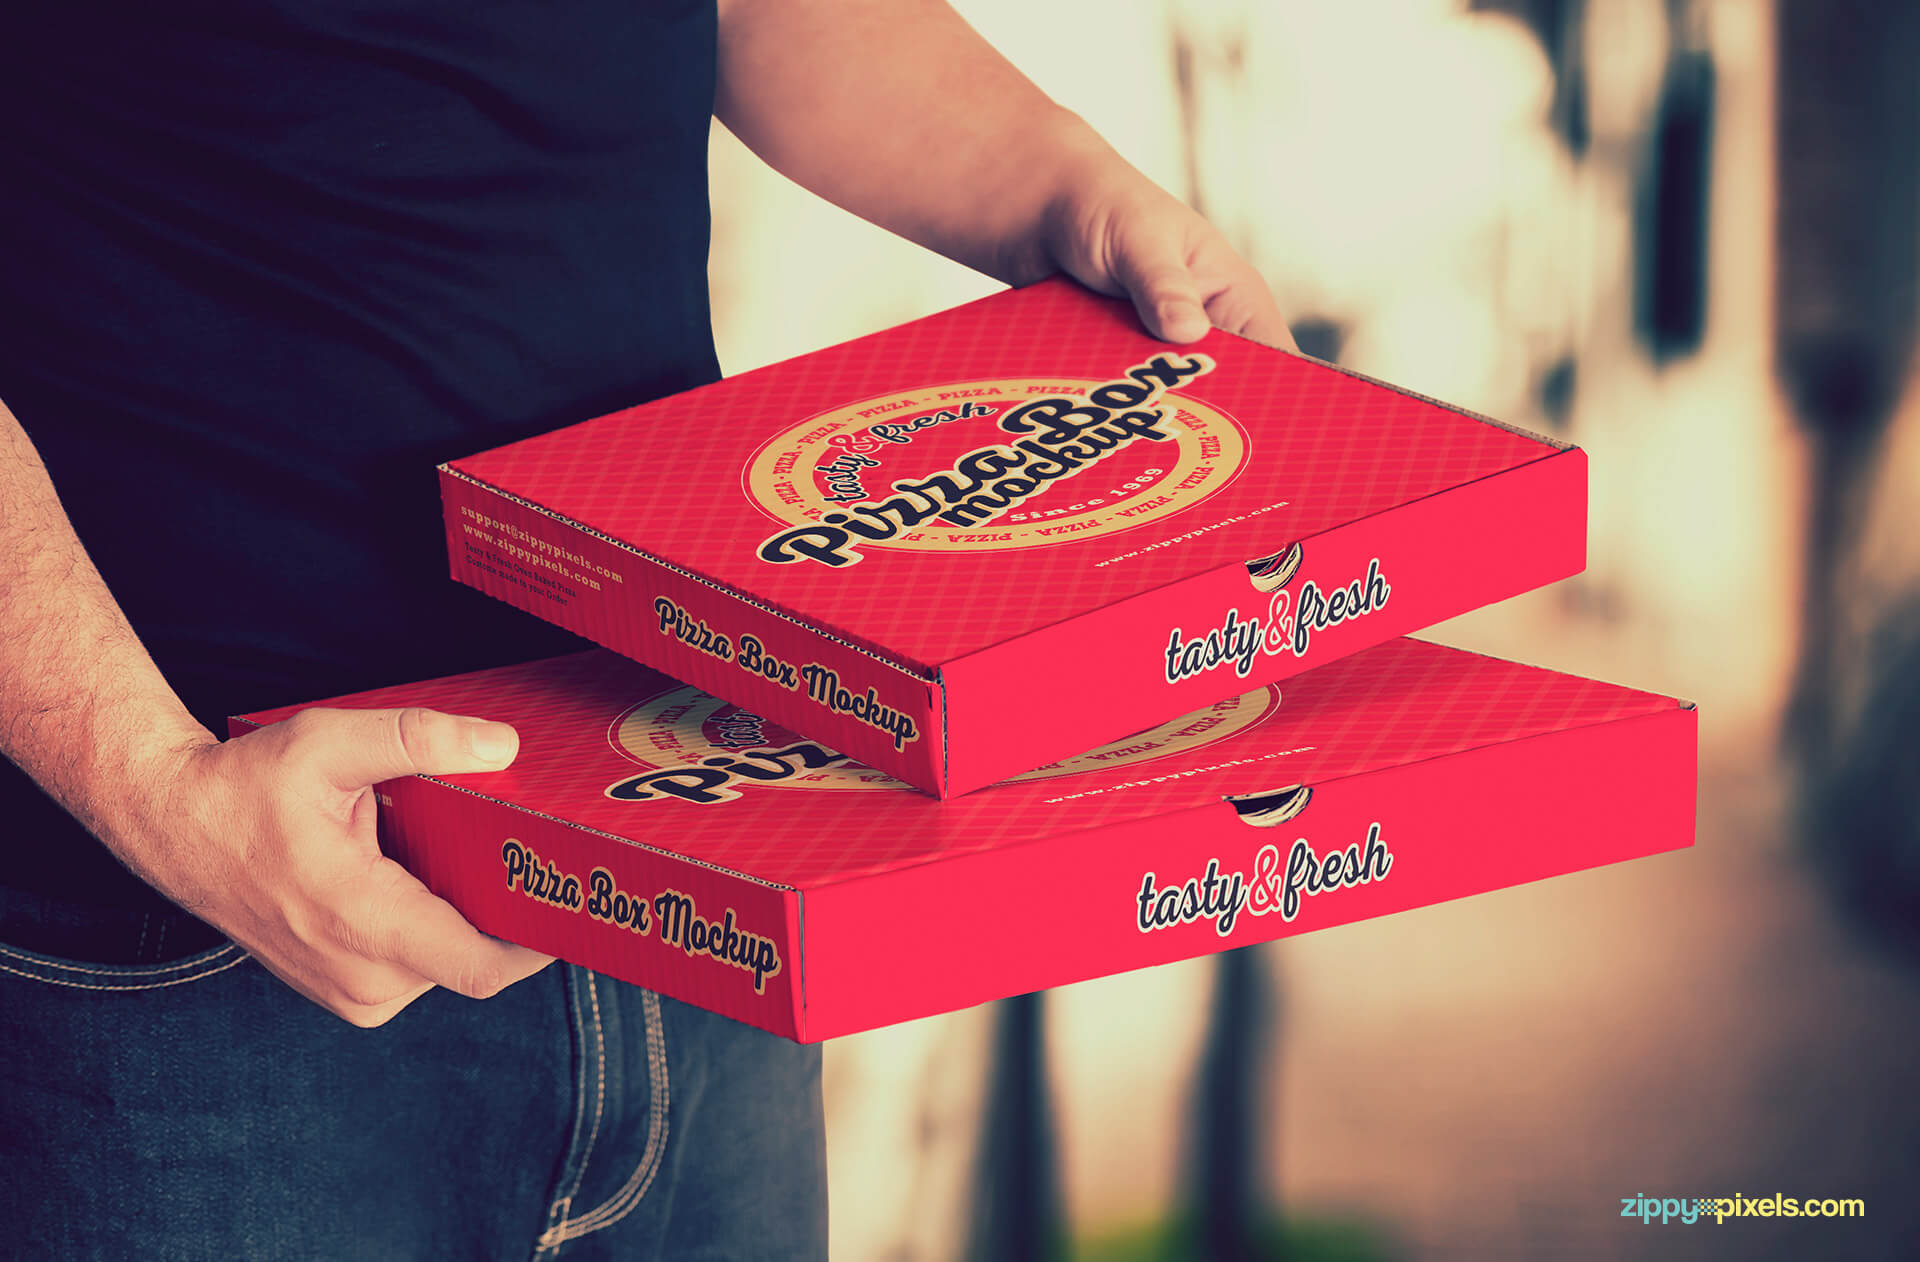 Impress your clients with these pizza box psd mockups.